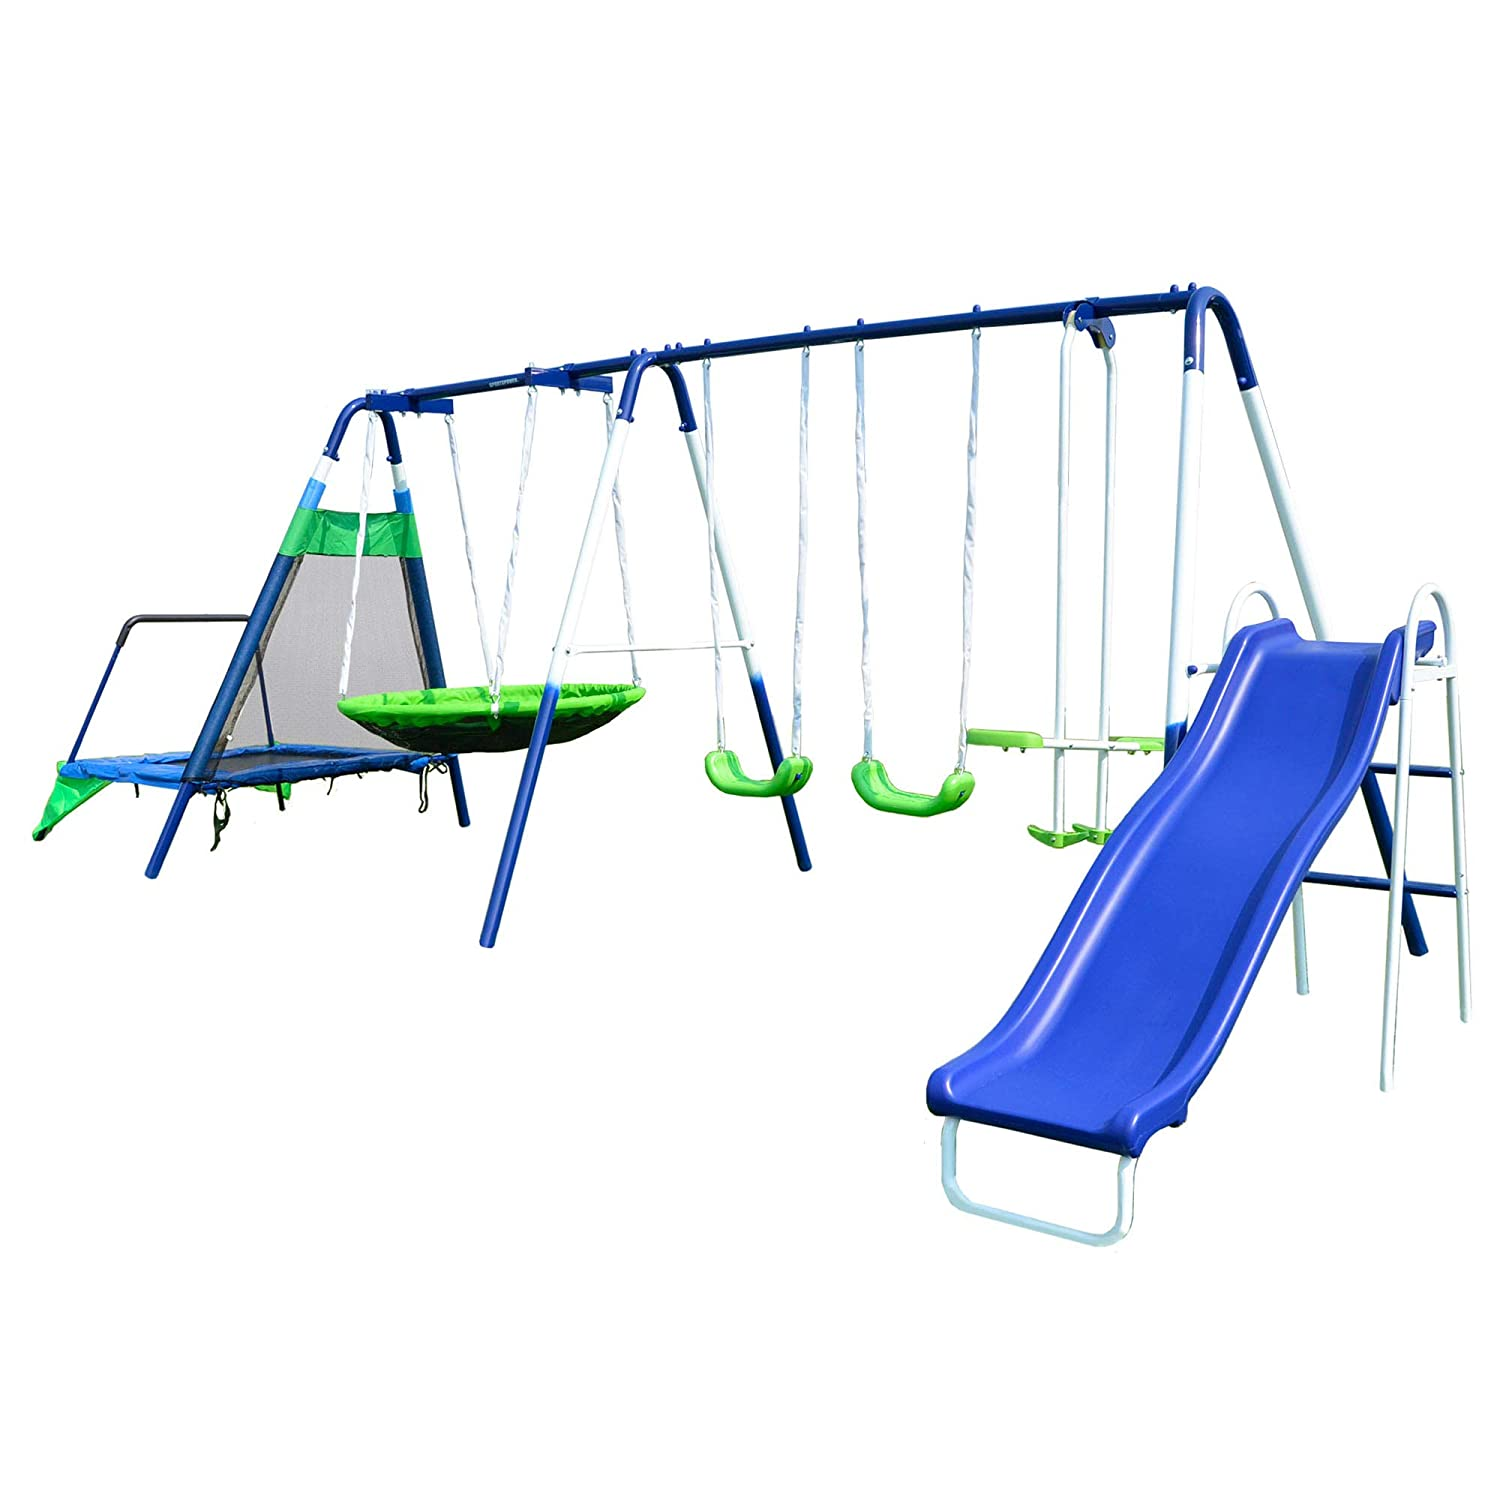 Top 7 Best Swing Sets for Older Kids Reviews in 2020 2